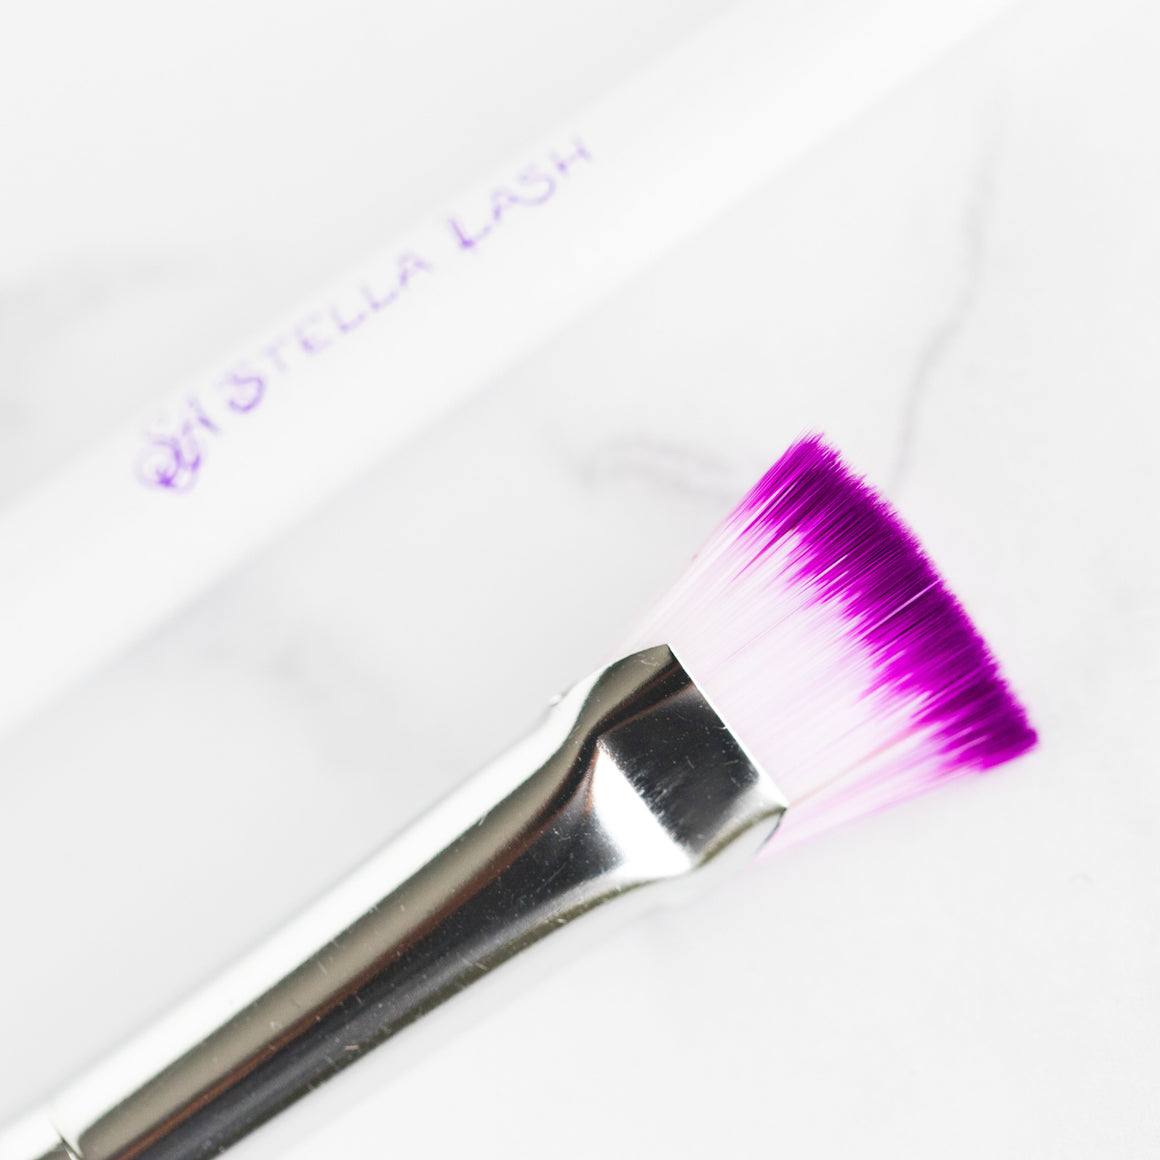 Mini Lash Fan Cleaning Brush - The Lash Shop @ StellaLash